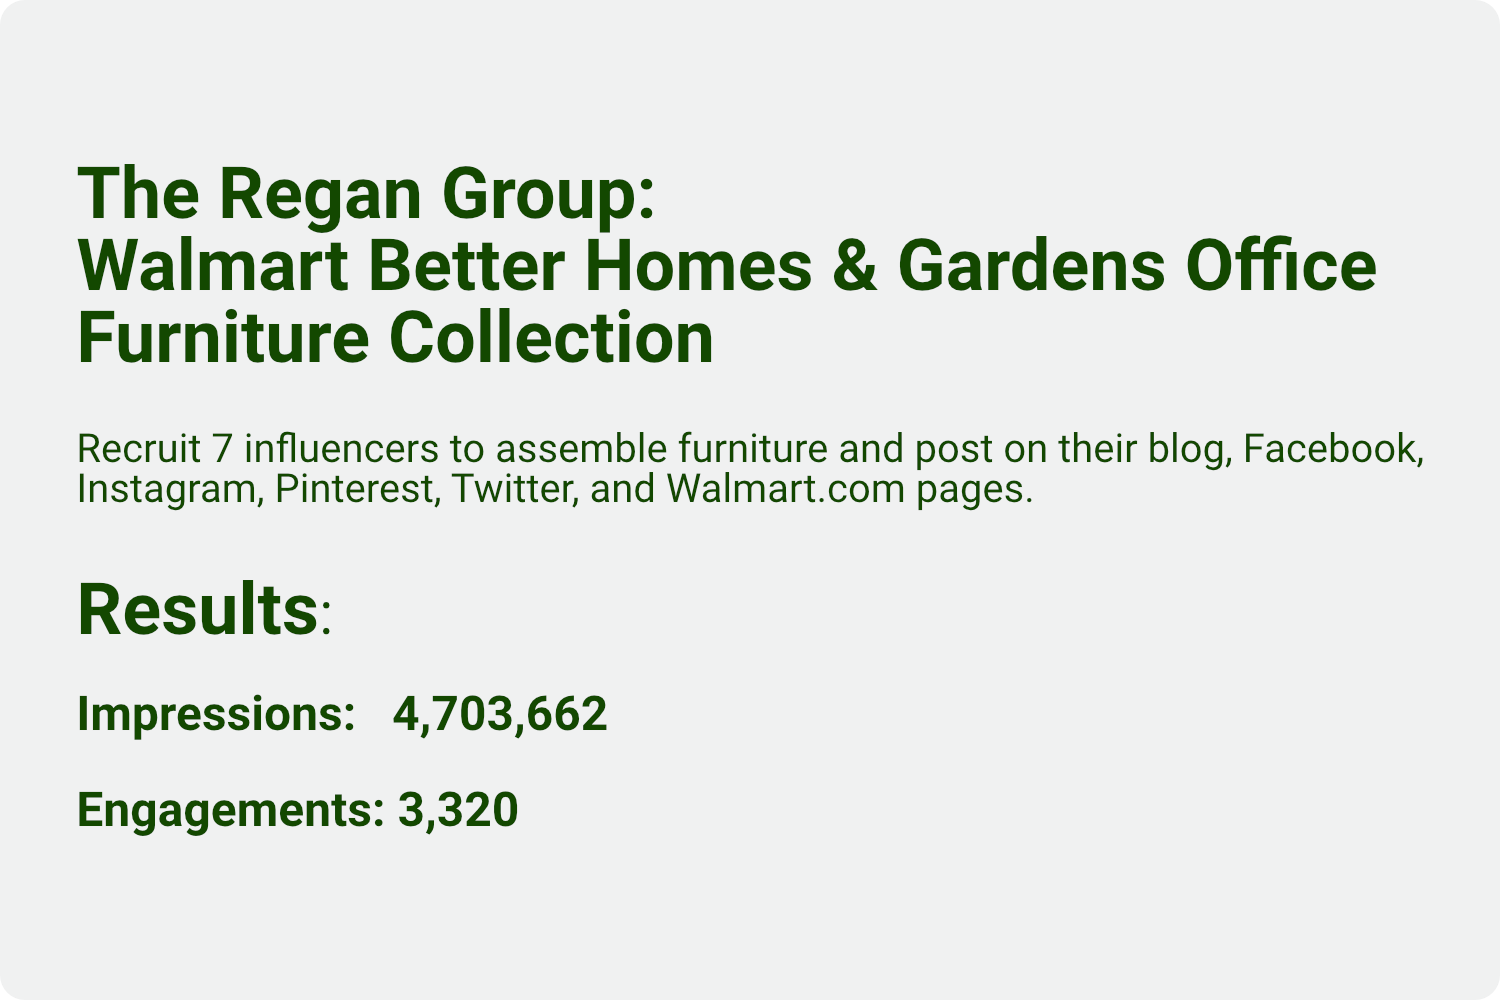 The Regan Group's Walmart Better Homes & Gardens Office Furniture Collection campaign results.